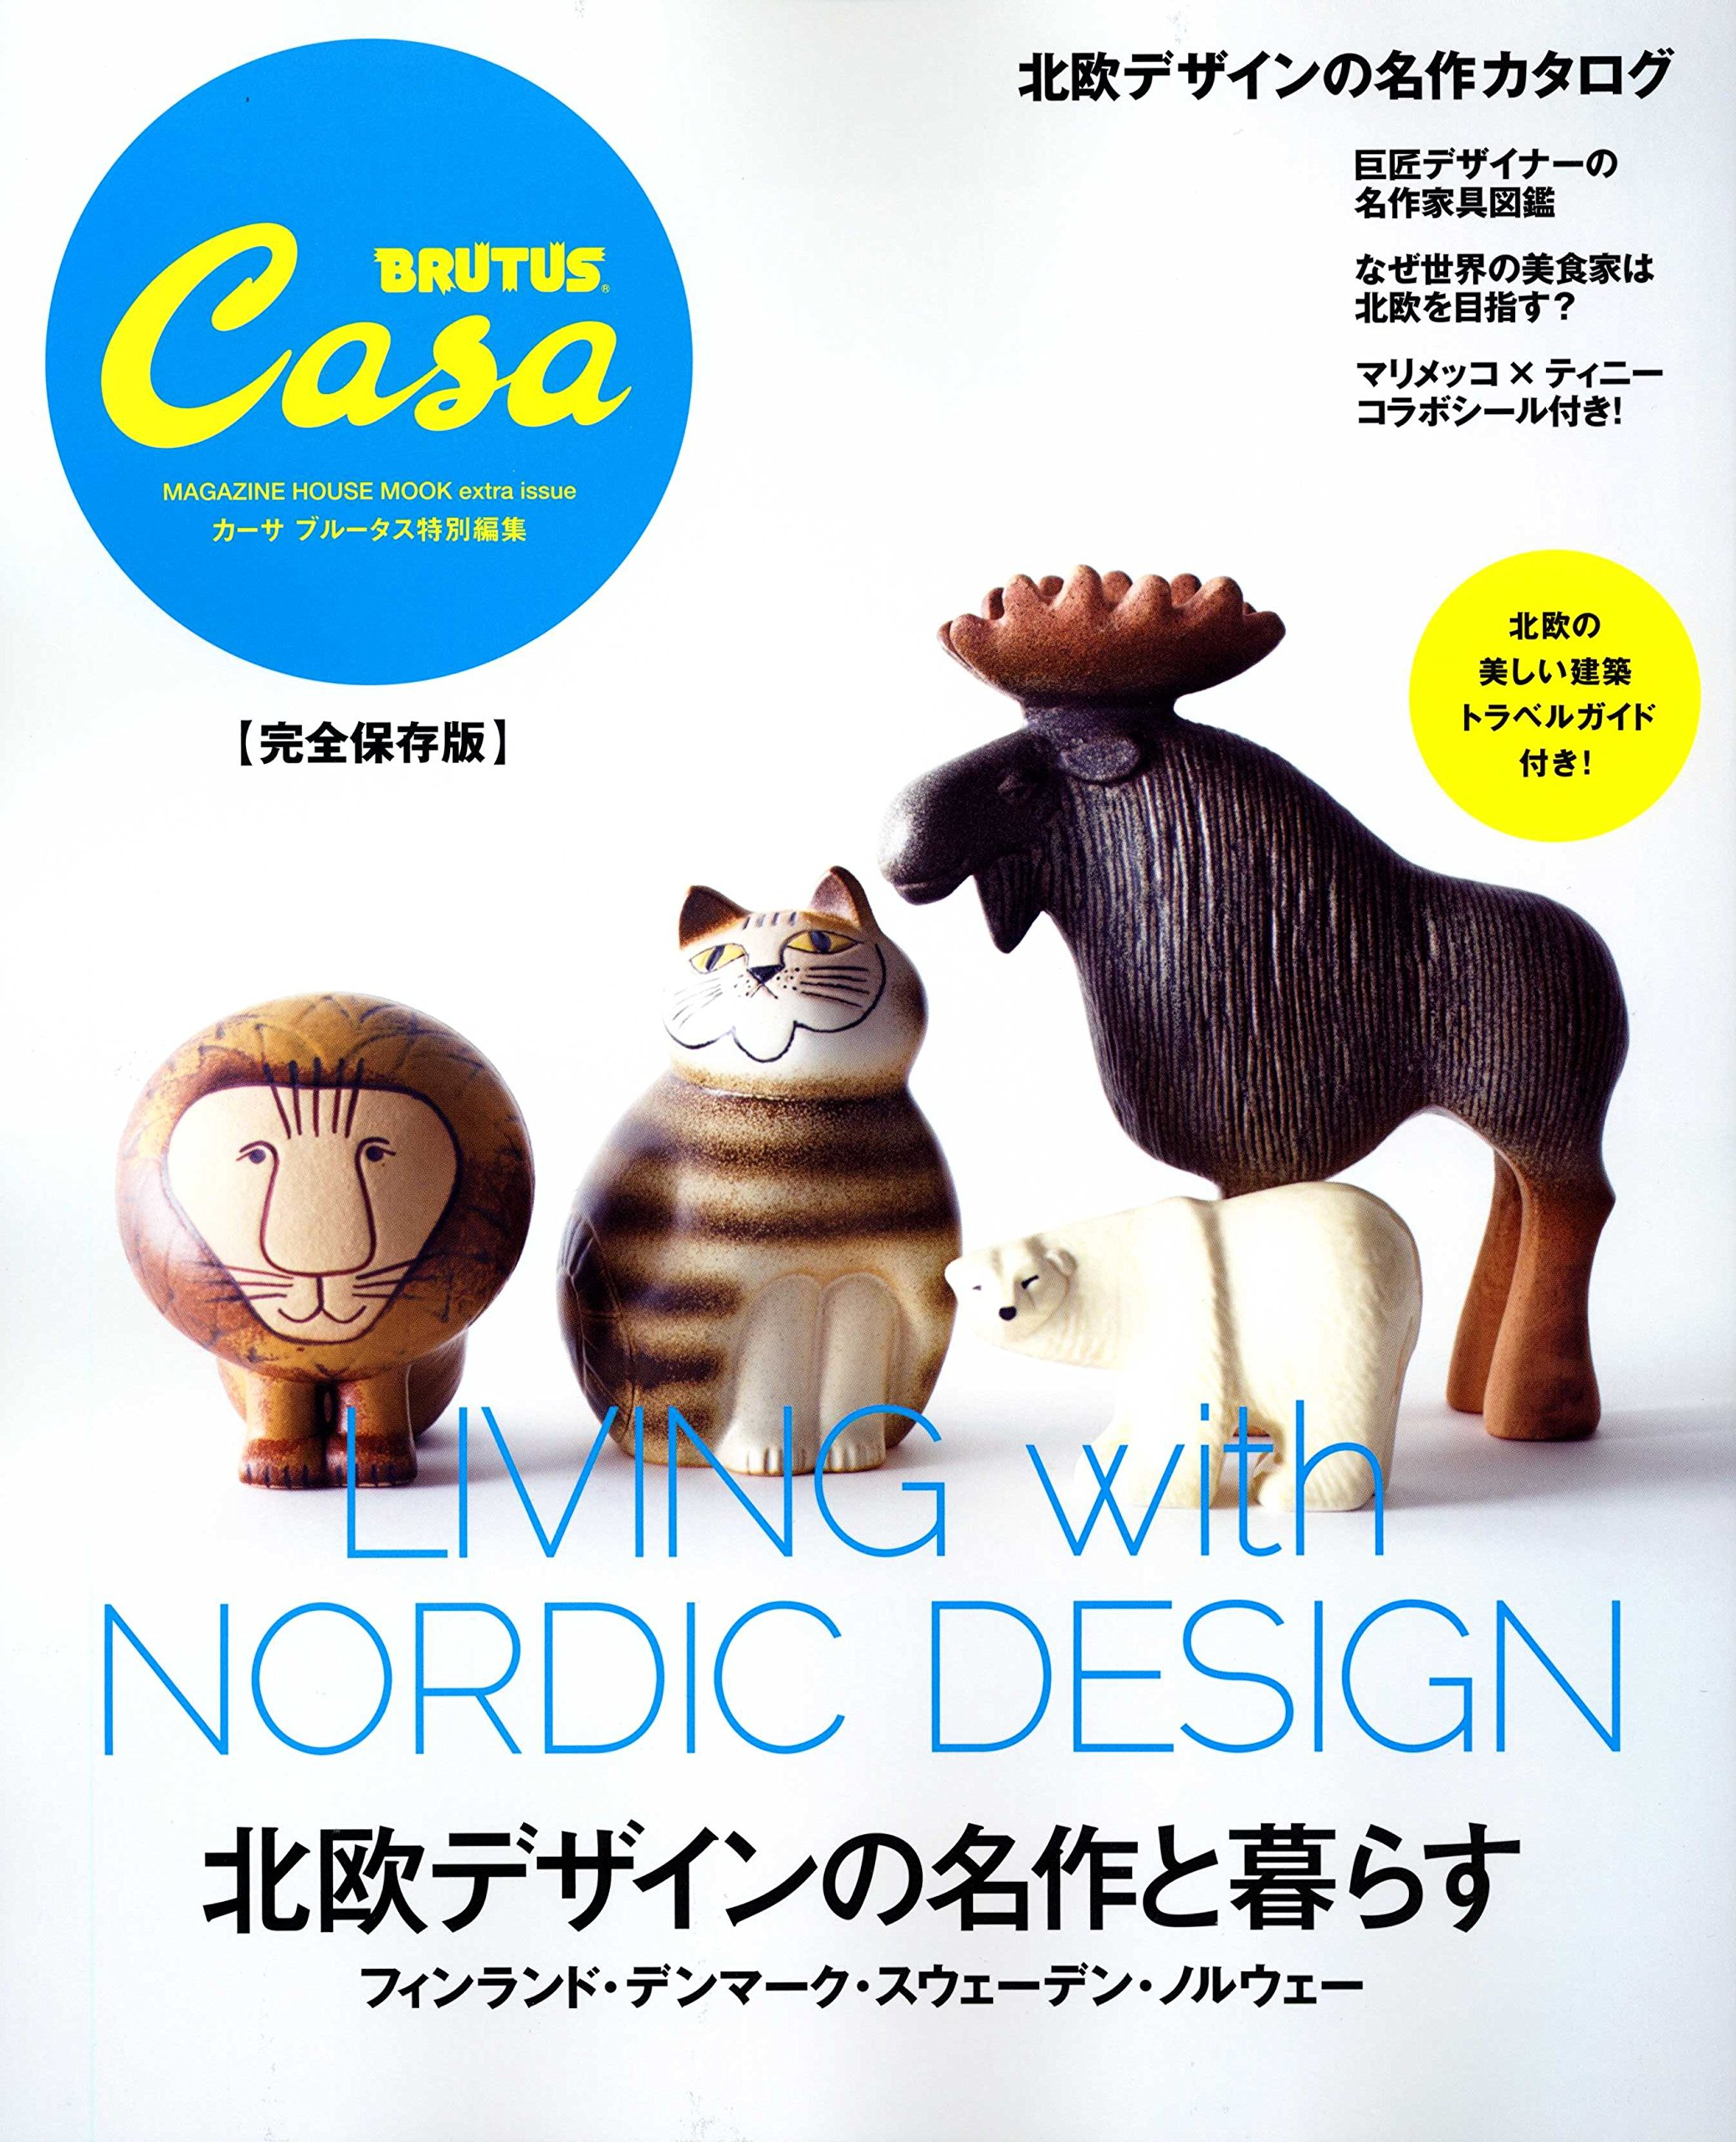 Download Casa BRUTUS ~ LIVING with NORDIC DESIGN (Magazine House Mook EXTRA ISSUE) [JAPANESE EDITION] 2014 pdf